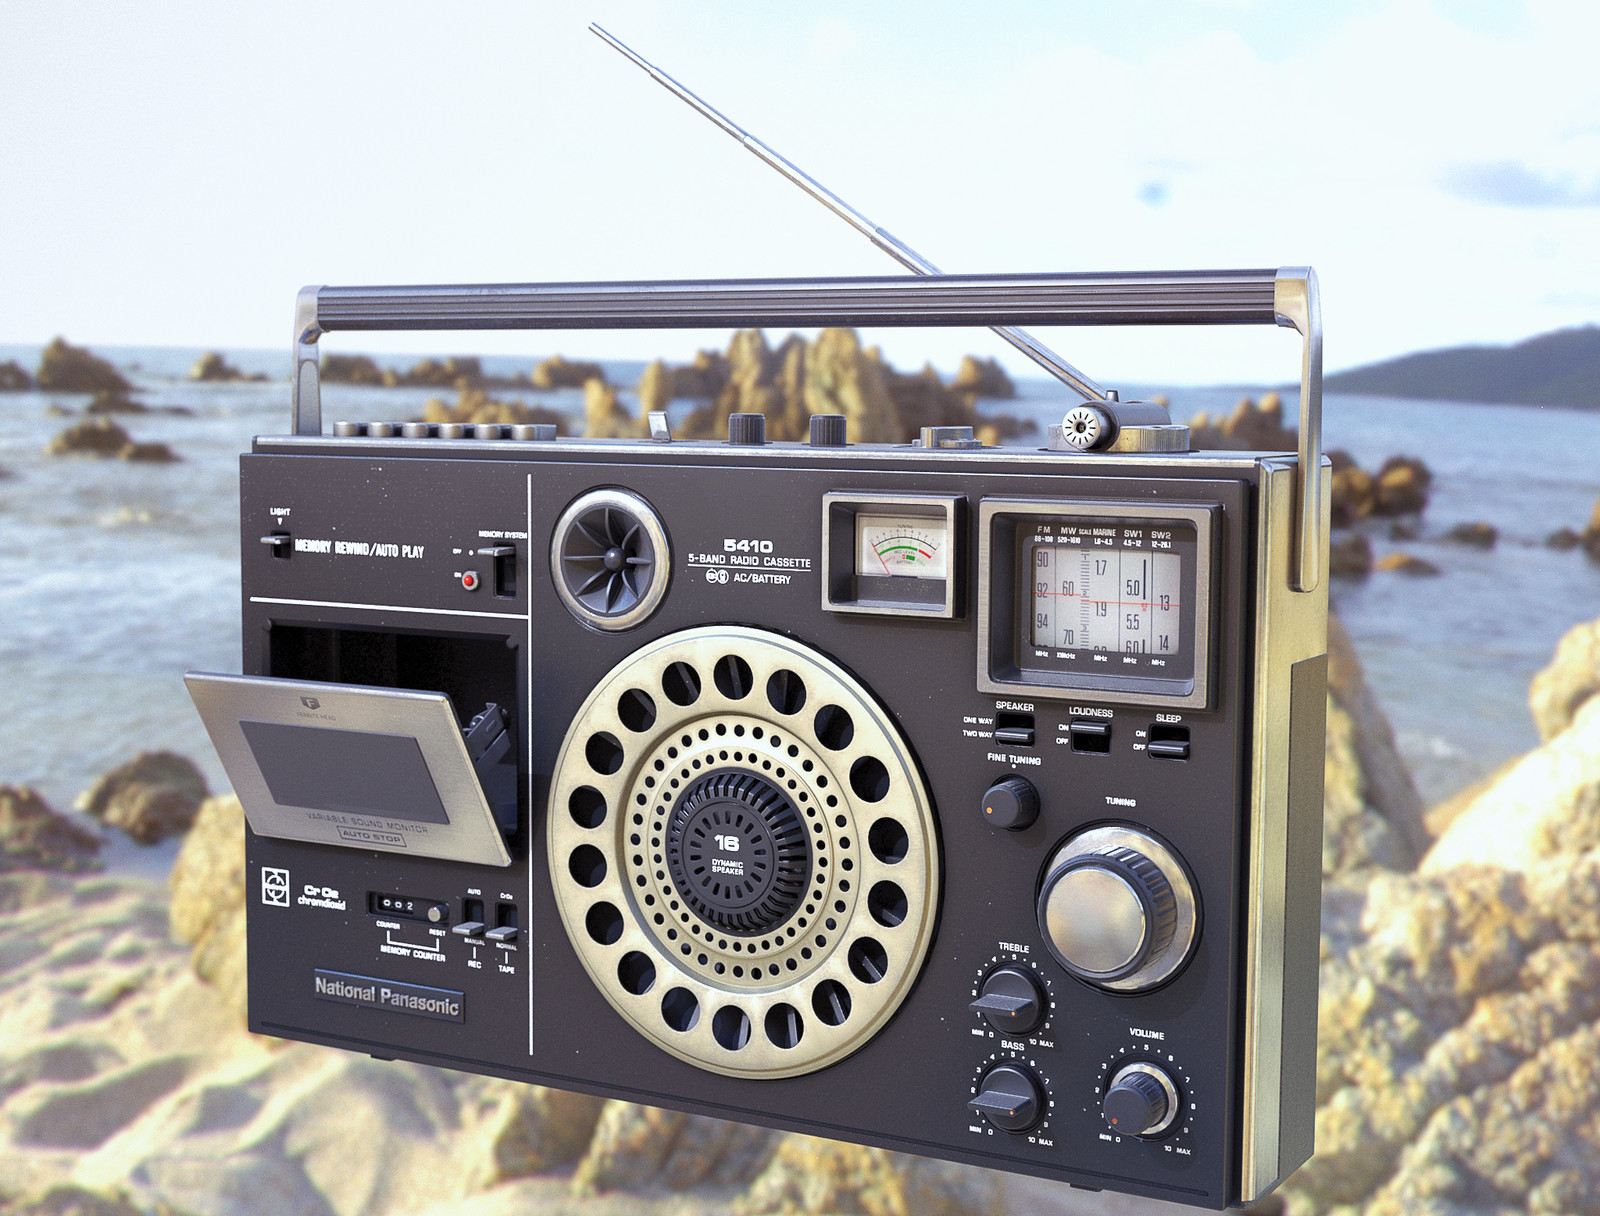 1972 National Panasonic Boombox model.